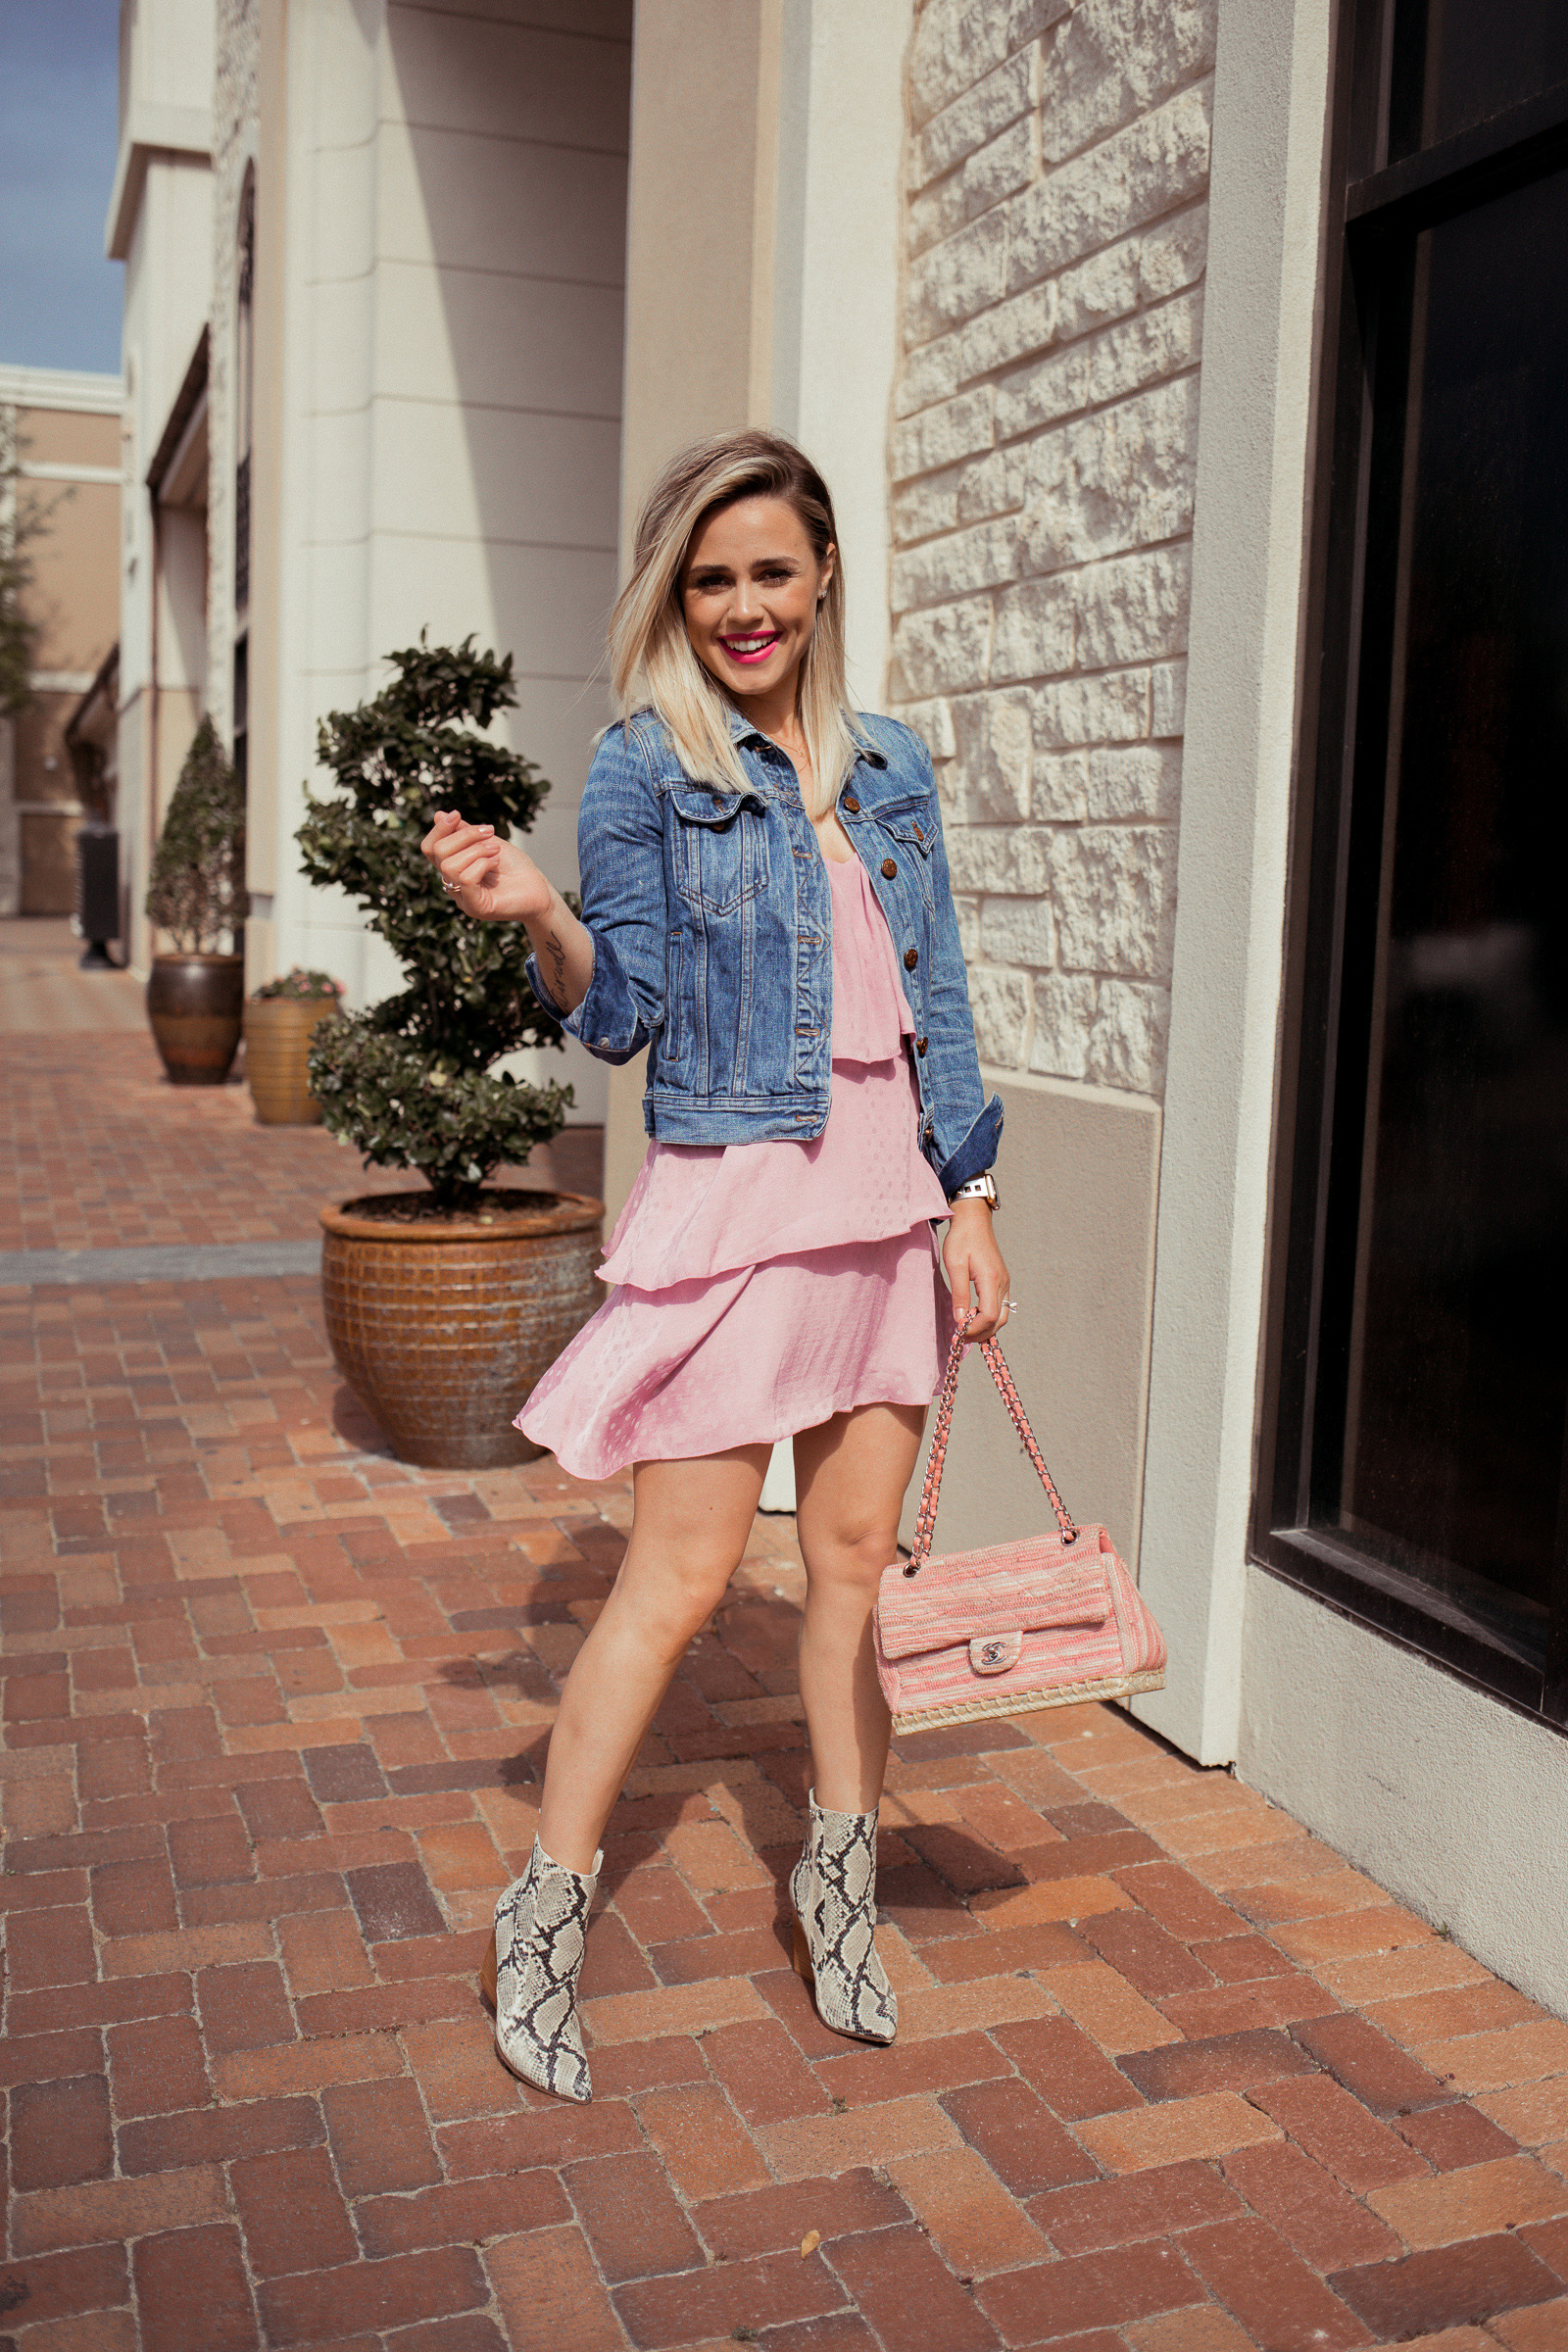 Houston fashion blogger Elly Brown wears a pink ruffle dress with a denim jacket for a western outfit